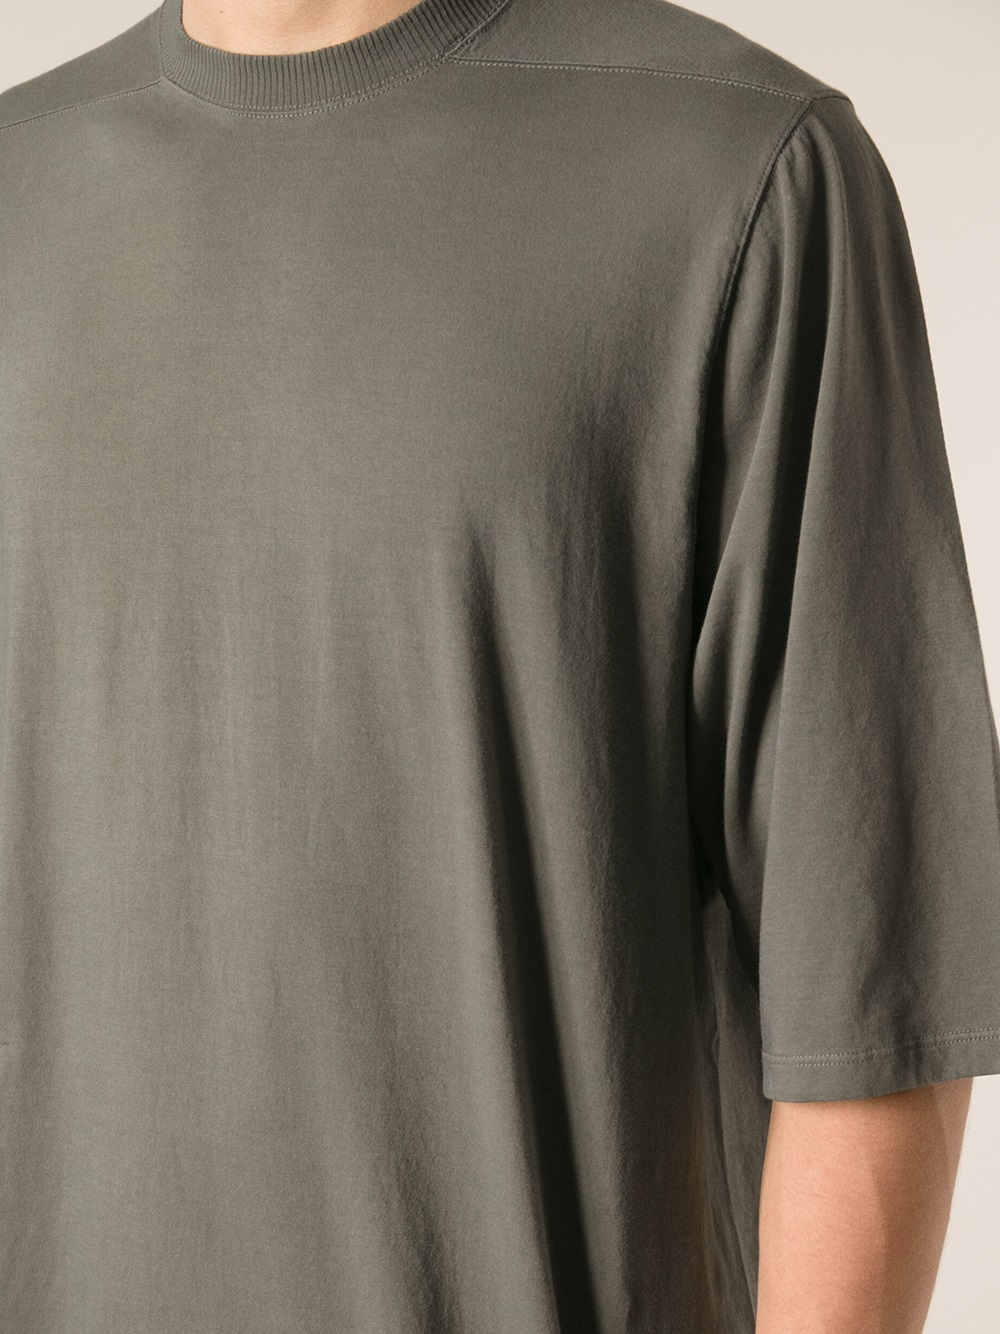 oversized T-shirt - Grey Rick Owens Outlet Prices Discount Classic Low Cost Cheap Online Buy Cheap Wide Range Of ZpQQik